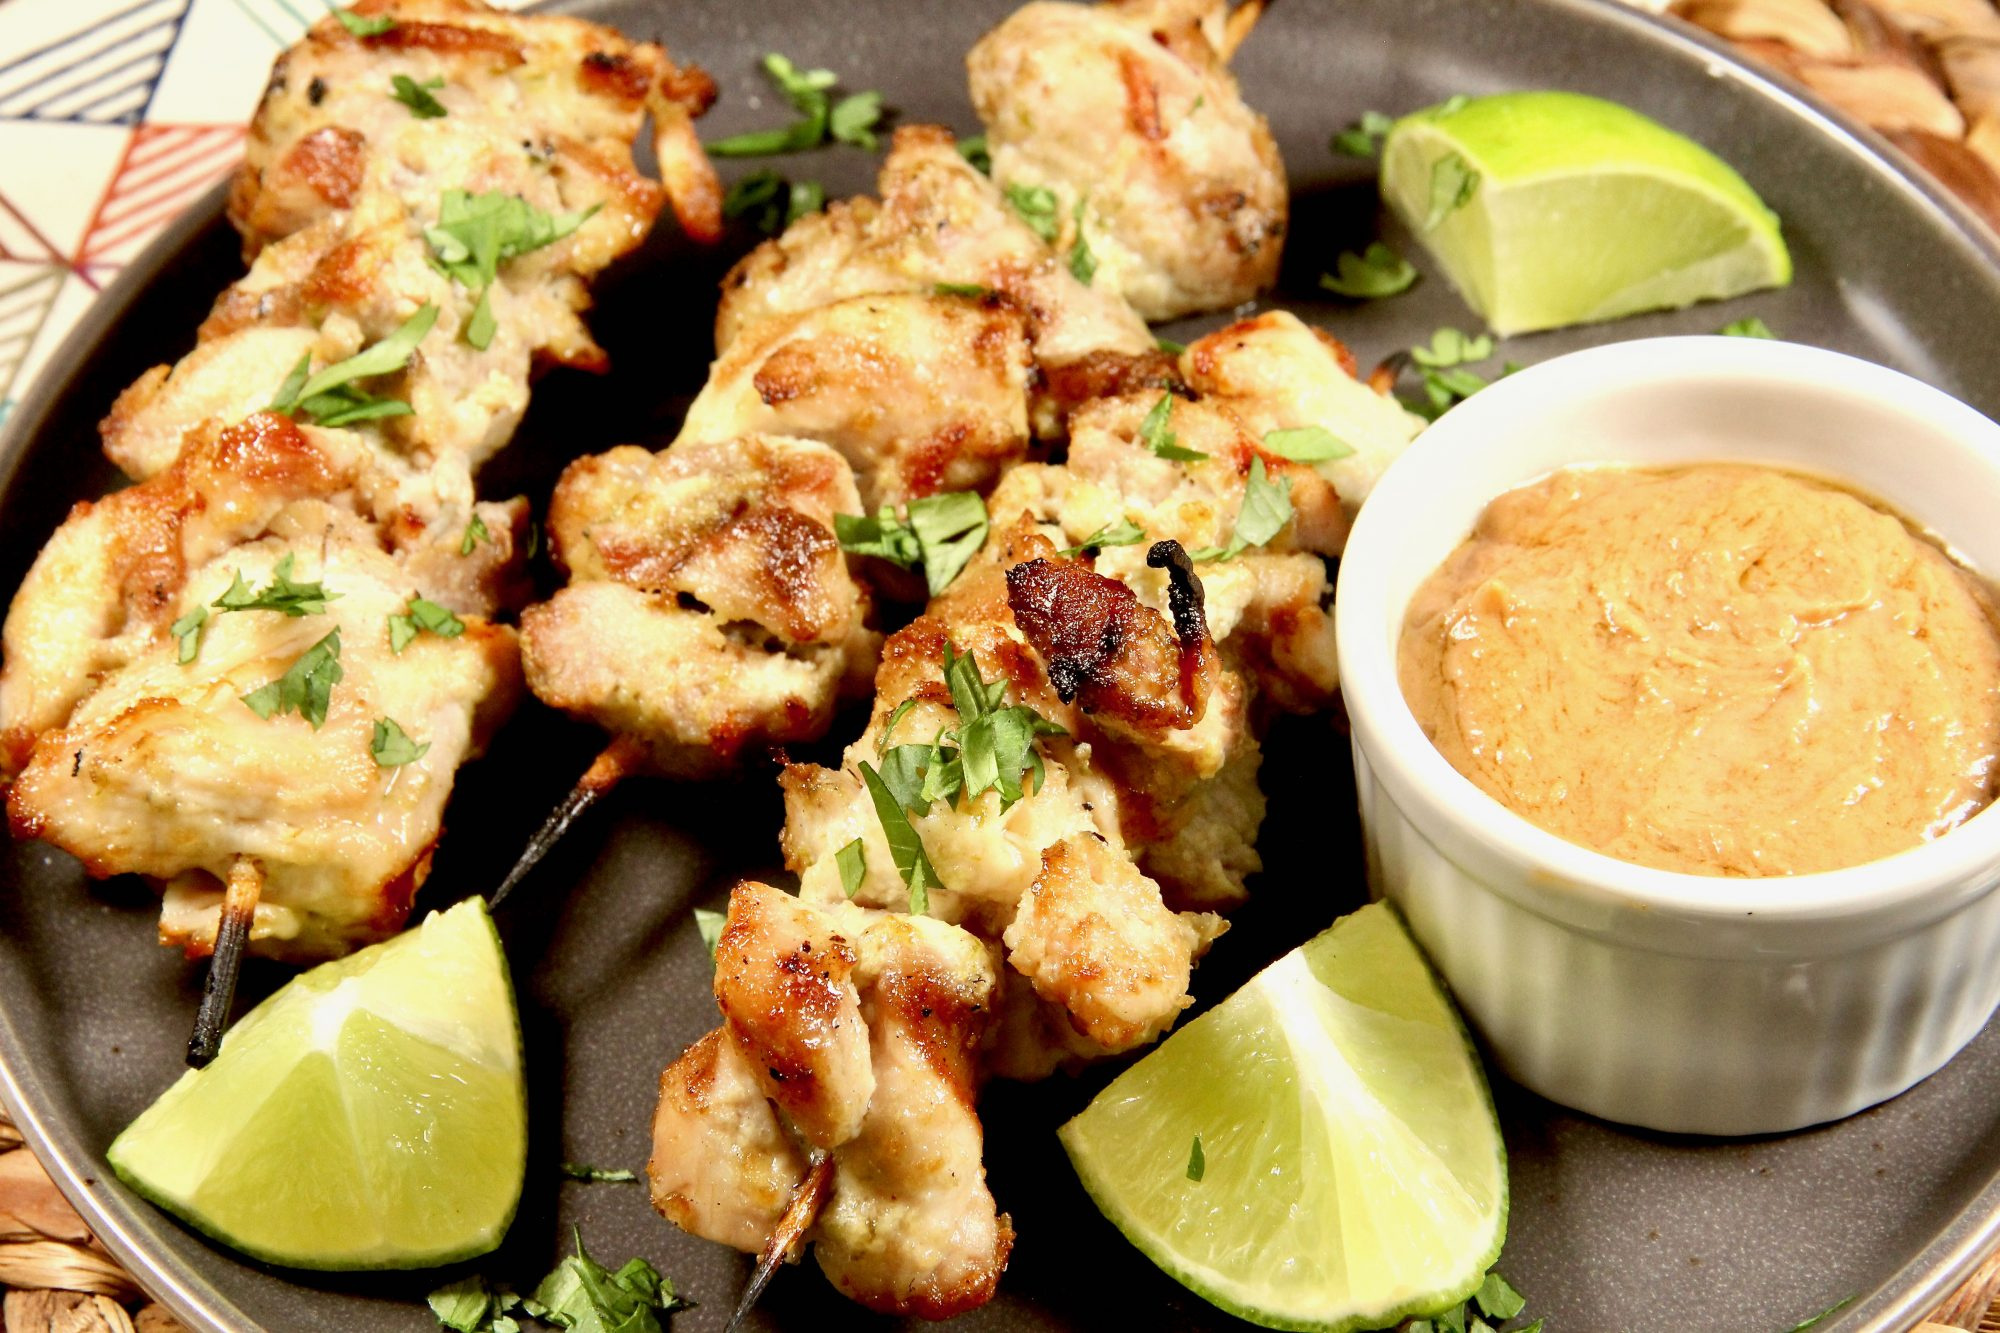 grilled chicken kabobs with lime wedges and peanut sauce